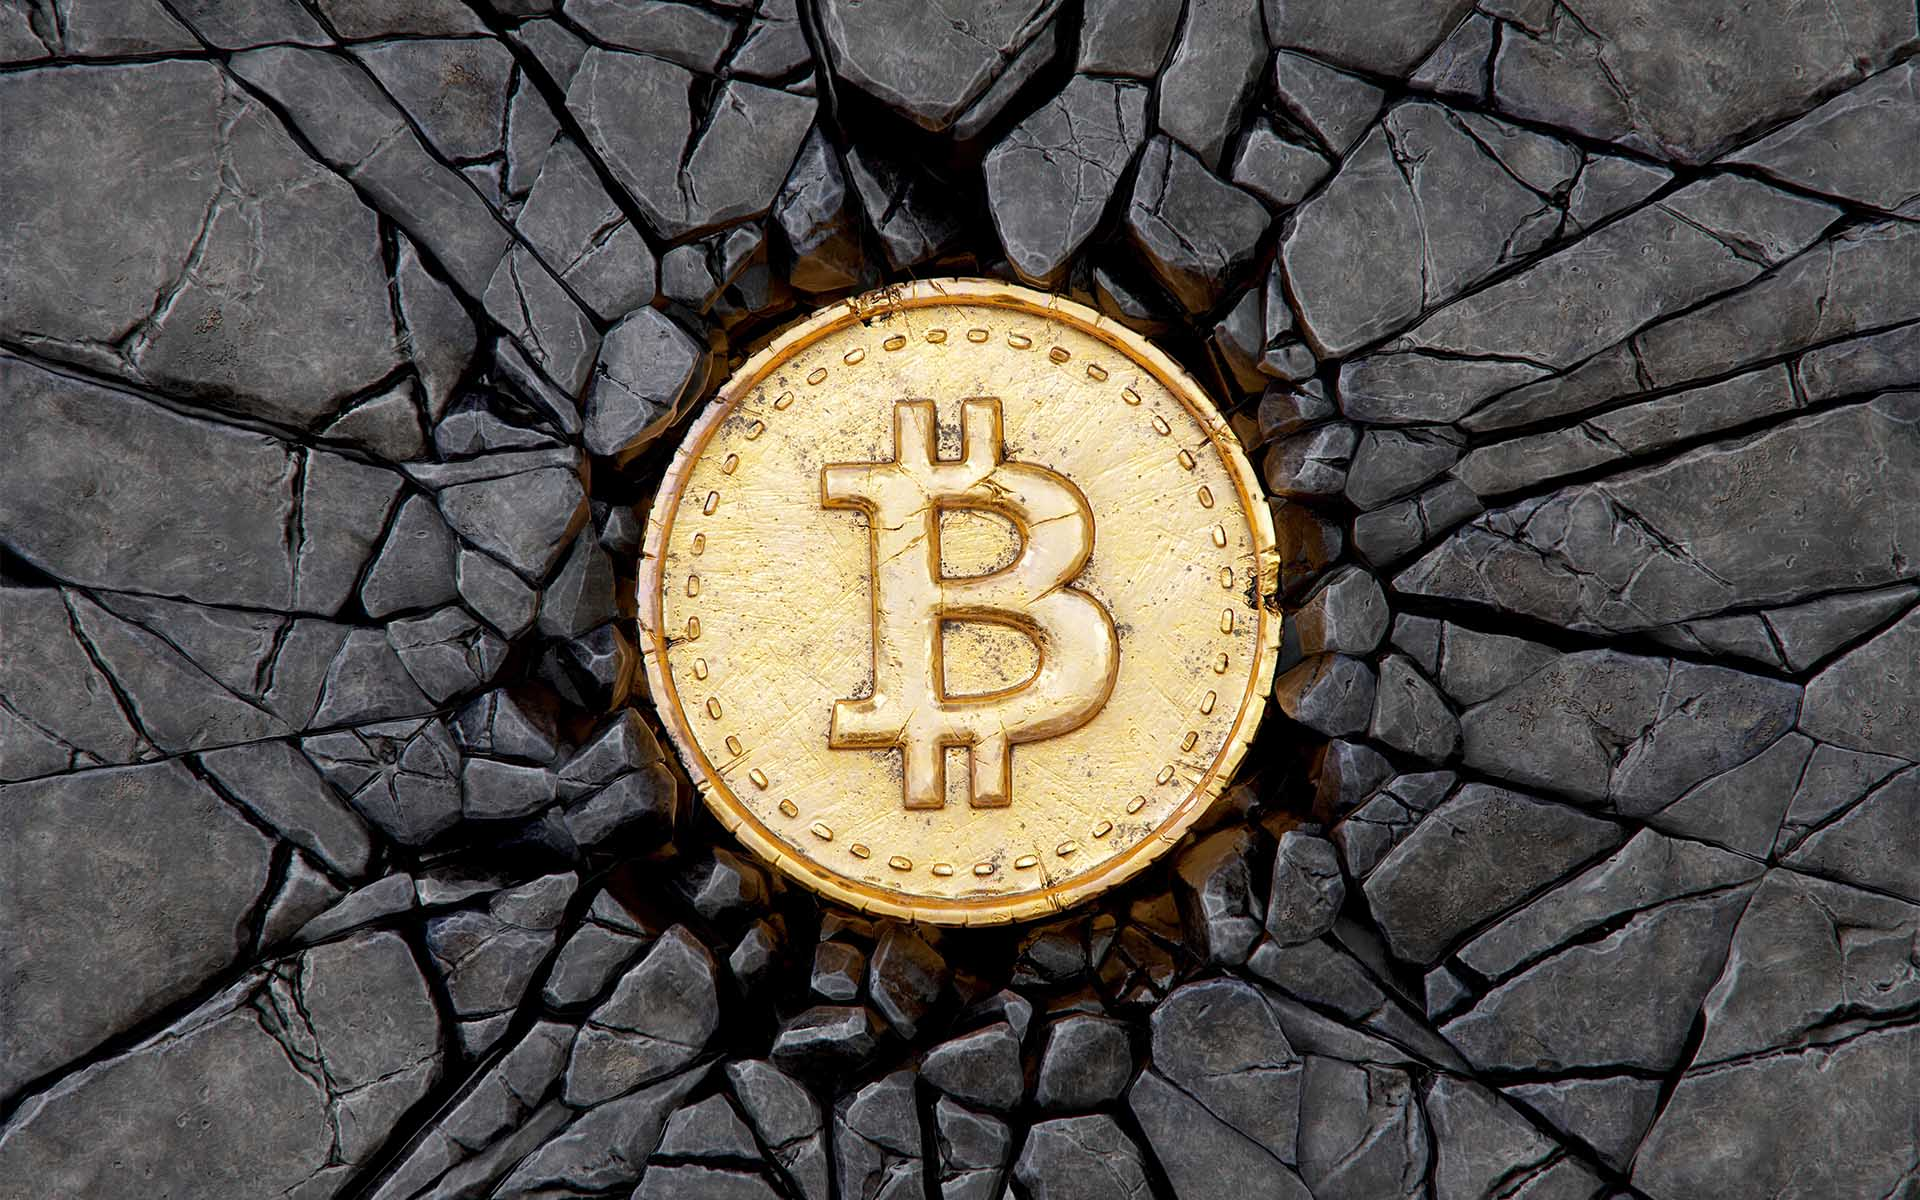 BITCOIN PRICE FALLS, BUT WILL RISE SOON